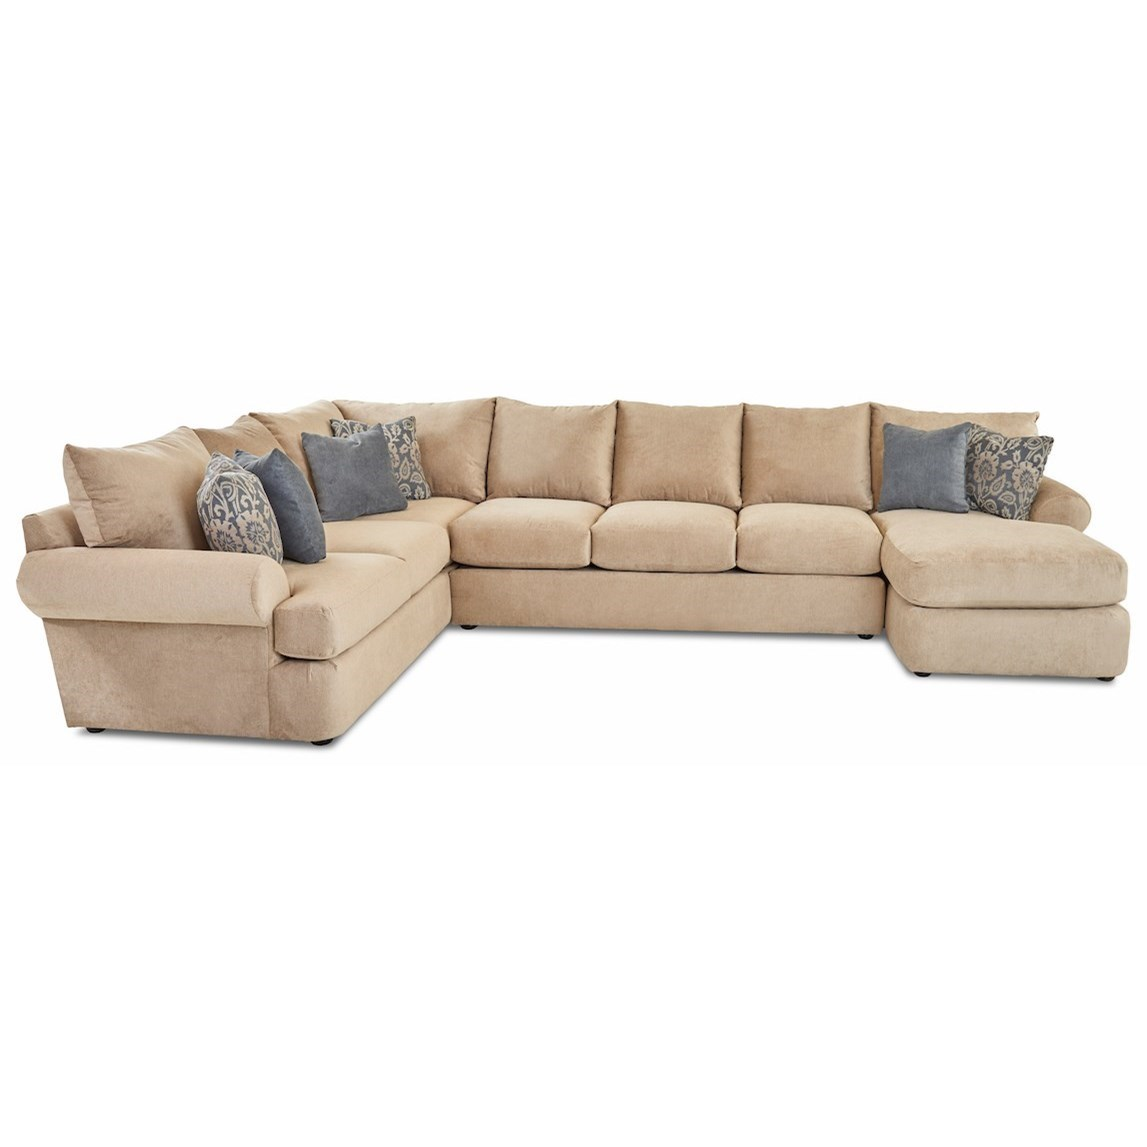 Cora 3-Piece Sectional Sofa w/ RAF Chaise by Klaussner at Northeast Factory Direct